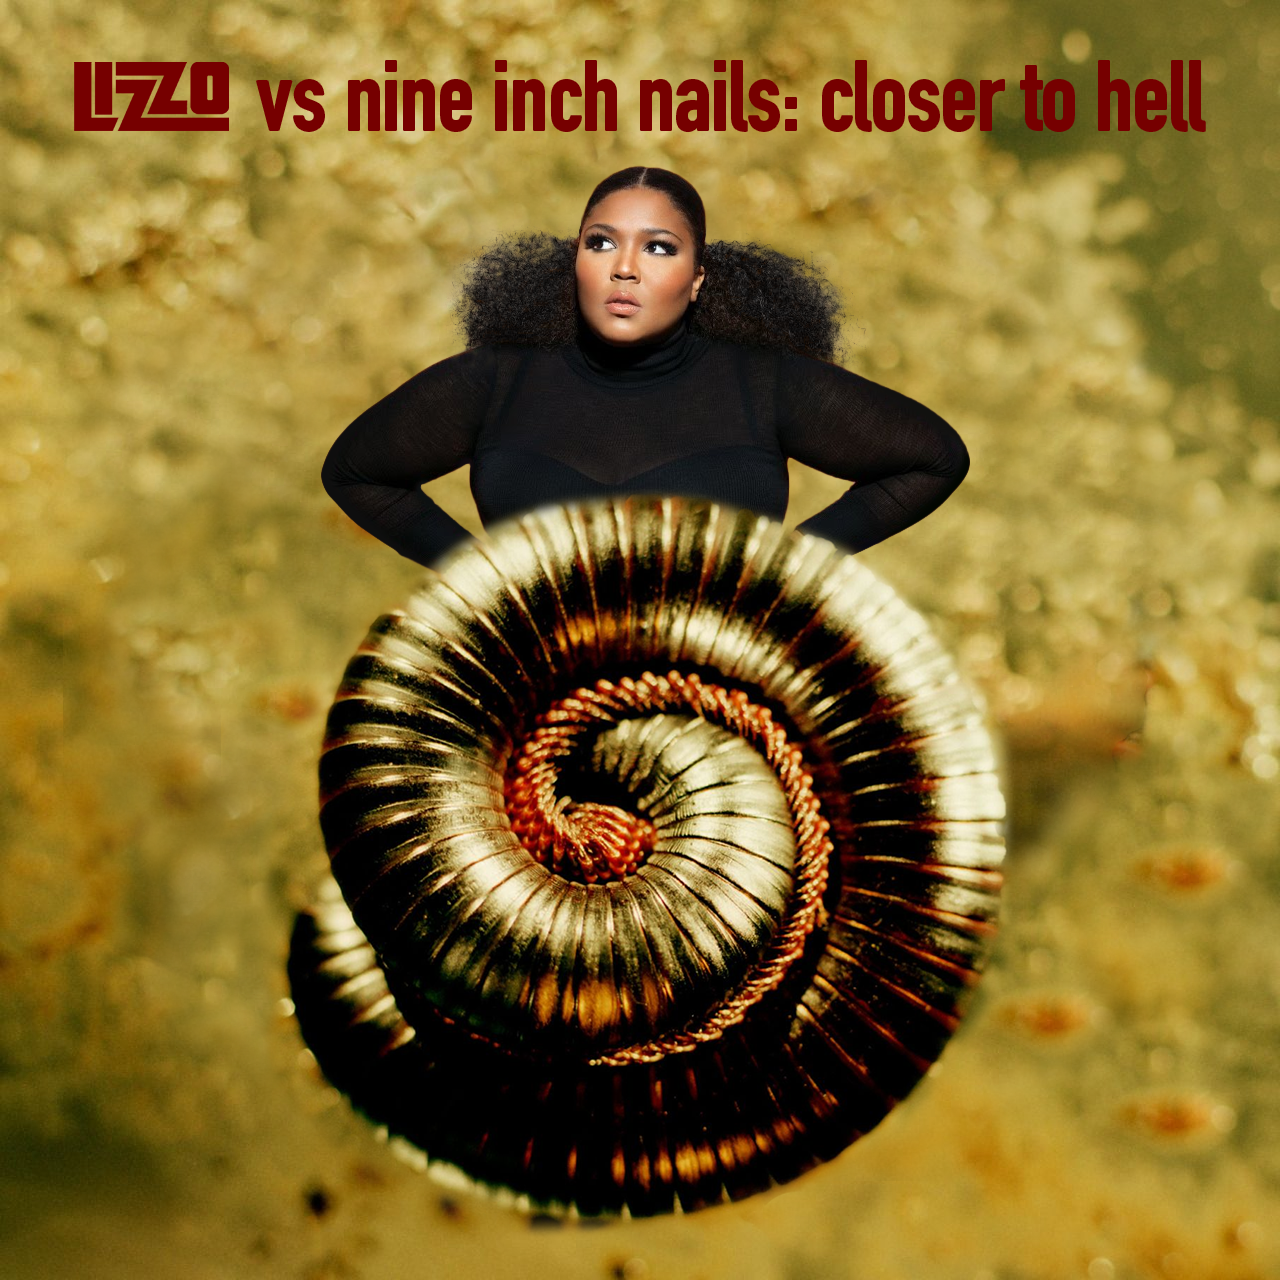 Lizzo vs Nine Inch Nails - Closer To Hell - Dirty (Mashup)